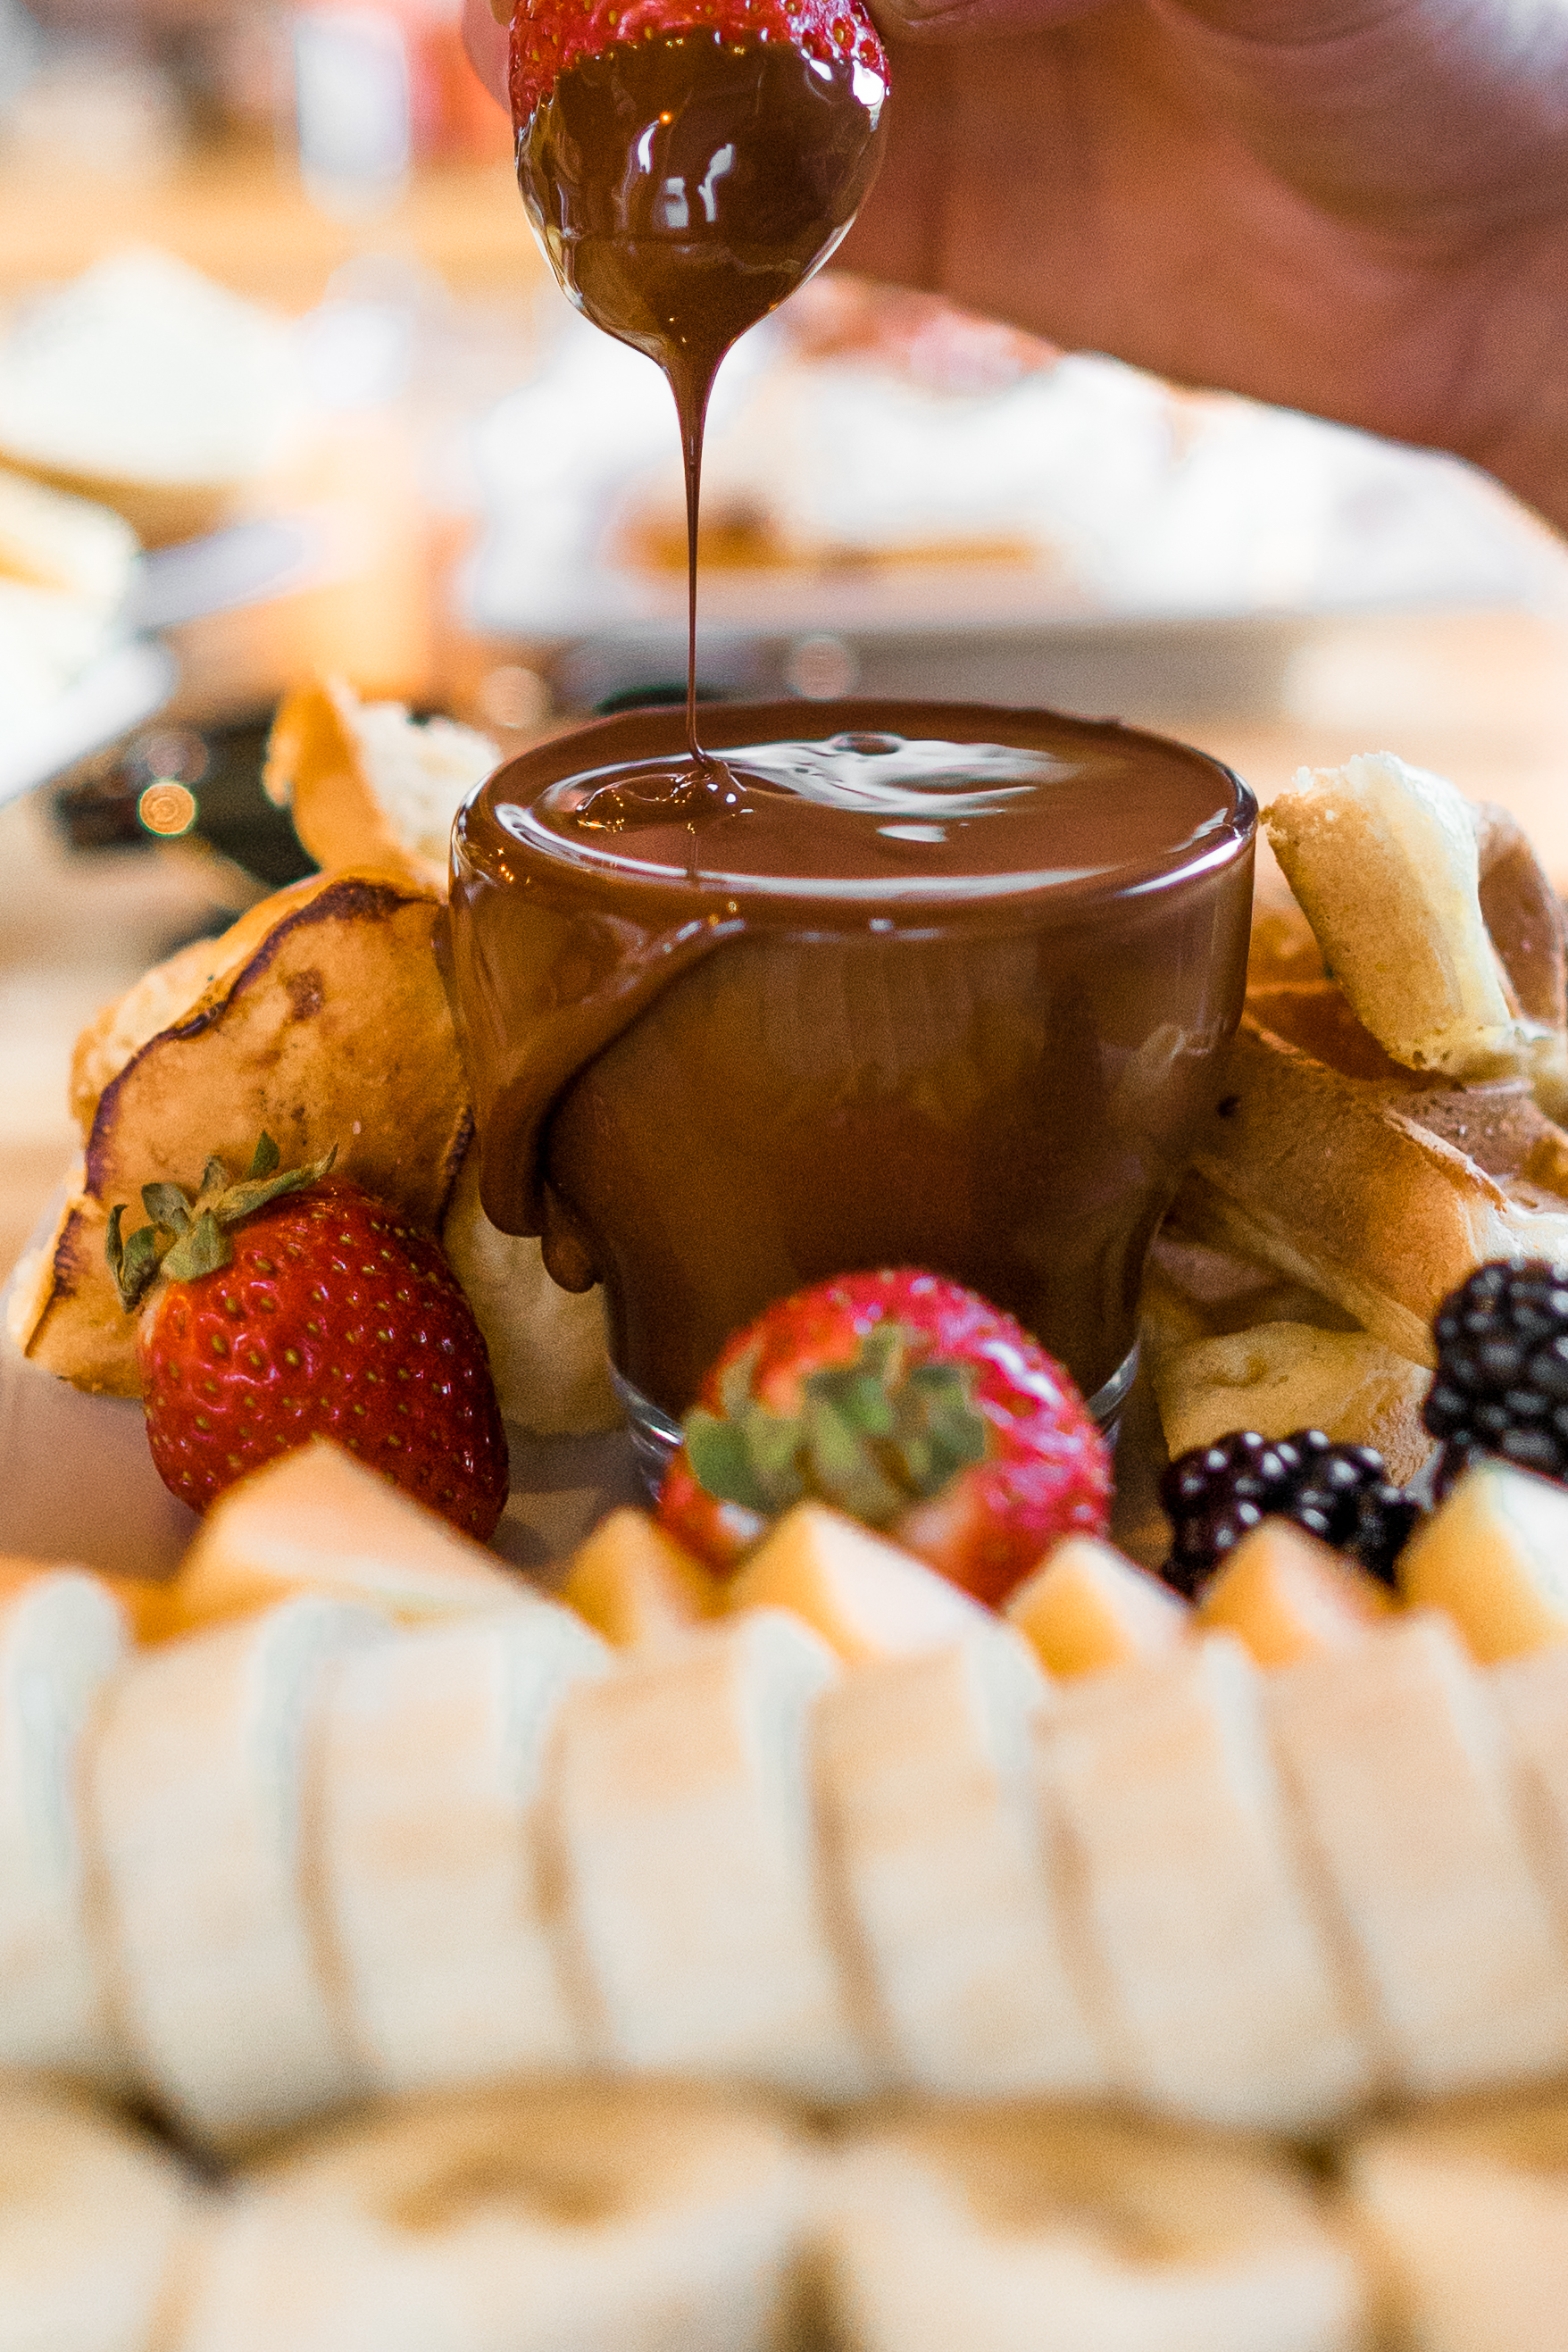 Monki_Dark_Chocolate_Fondue_served_with_waffles_and_fruit